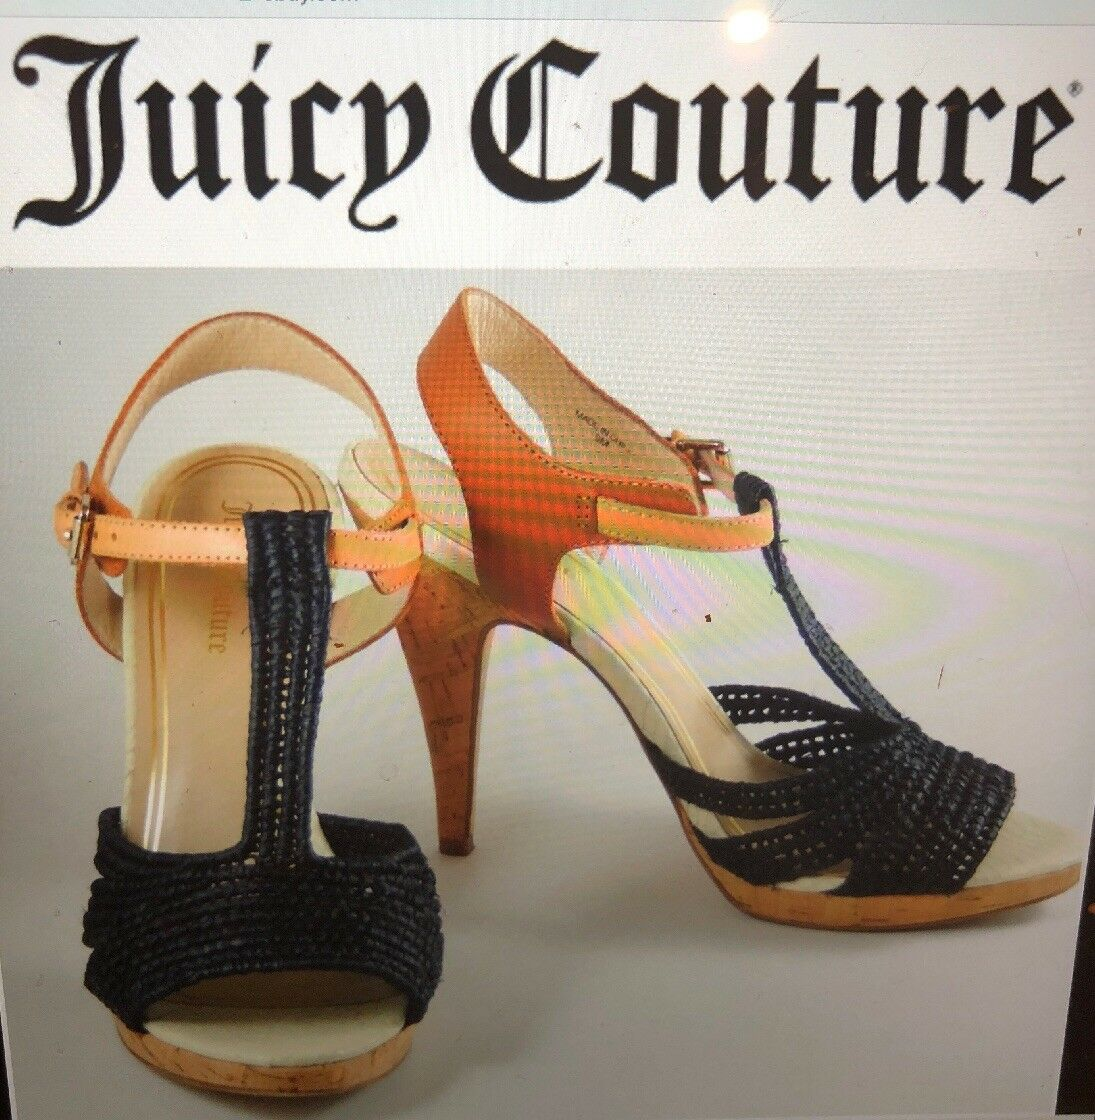 Juicy Couture Women's Amali High Heel Sandals